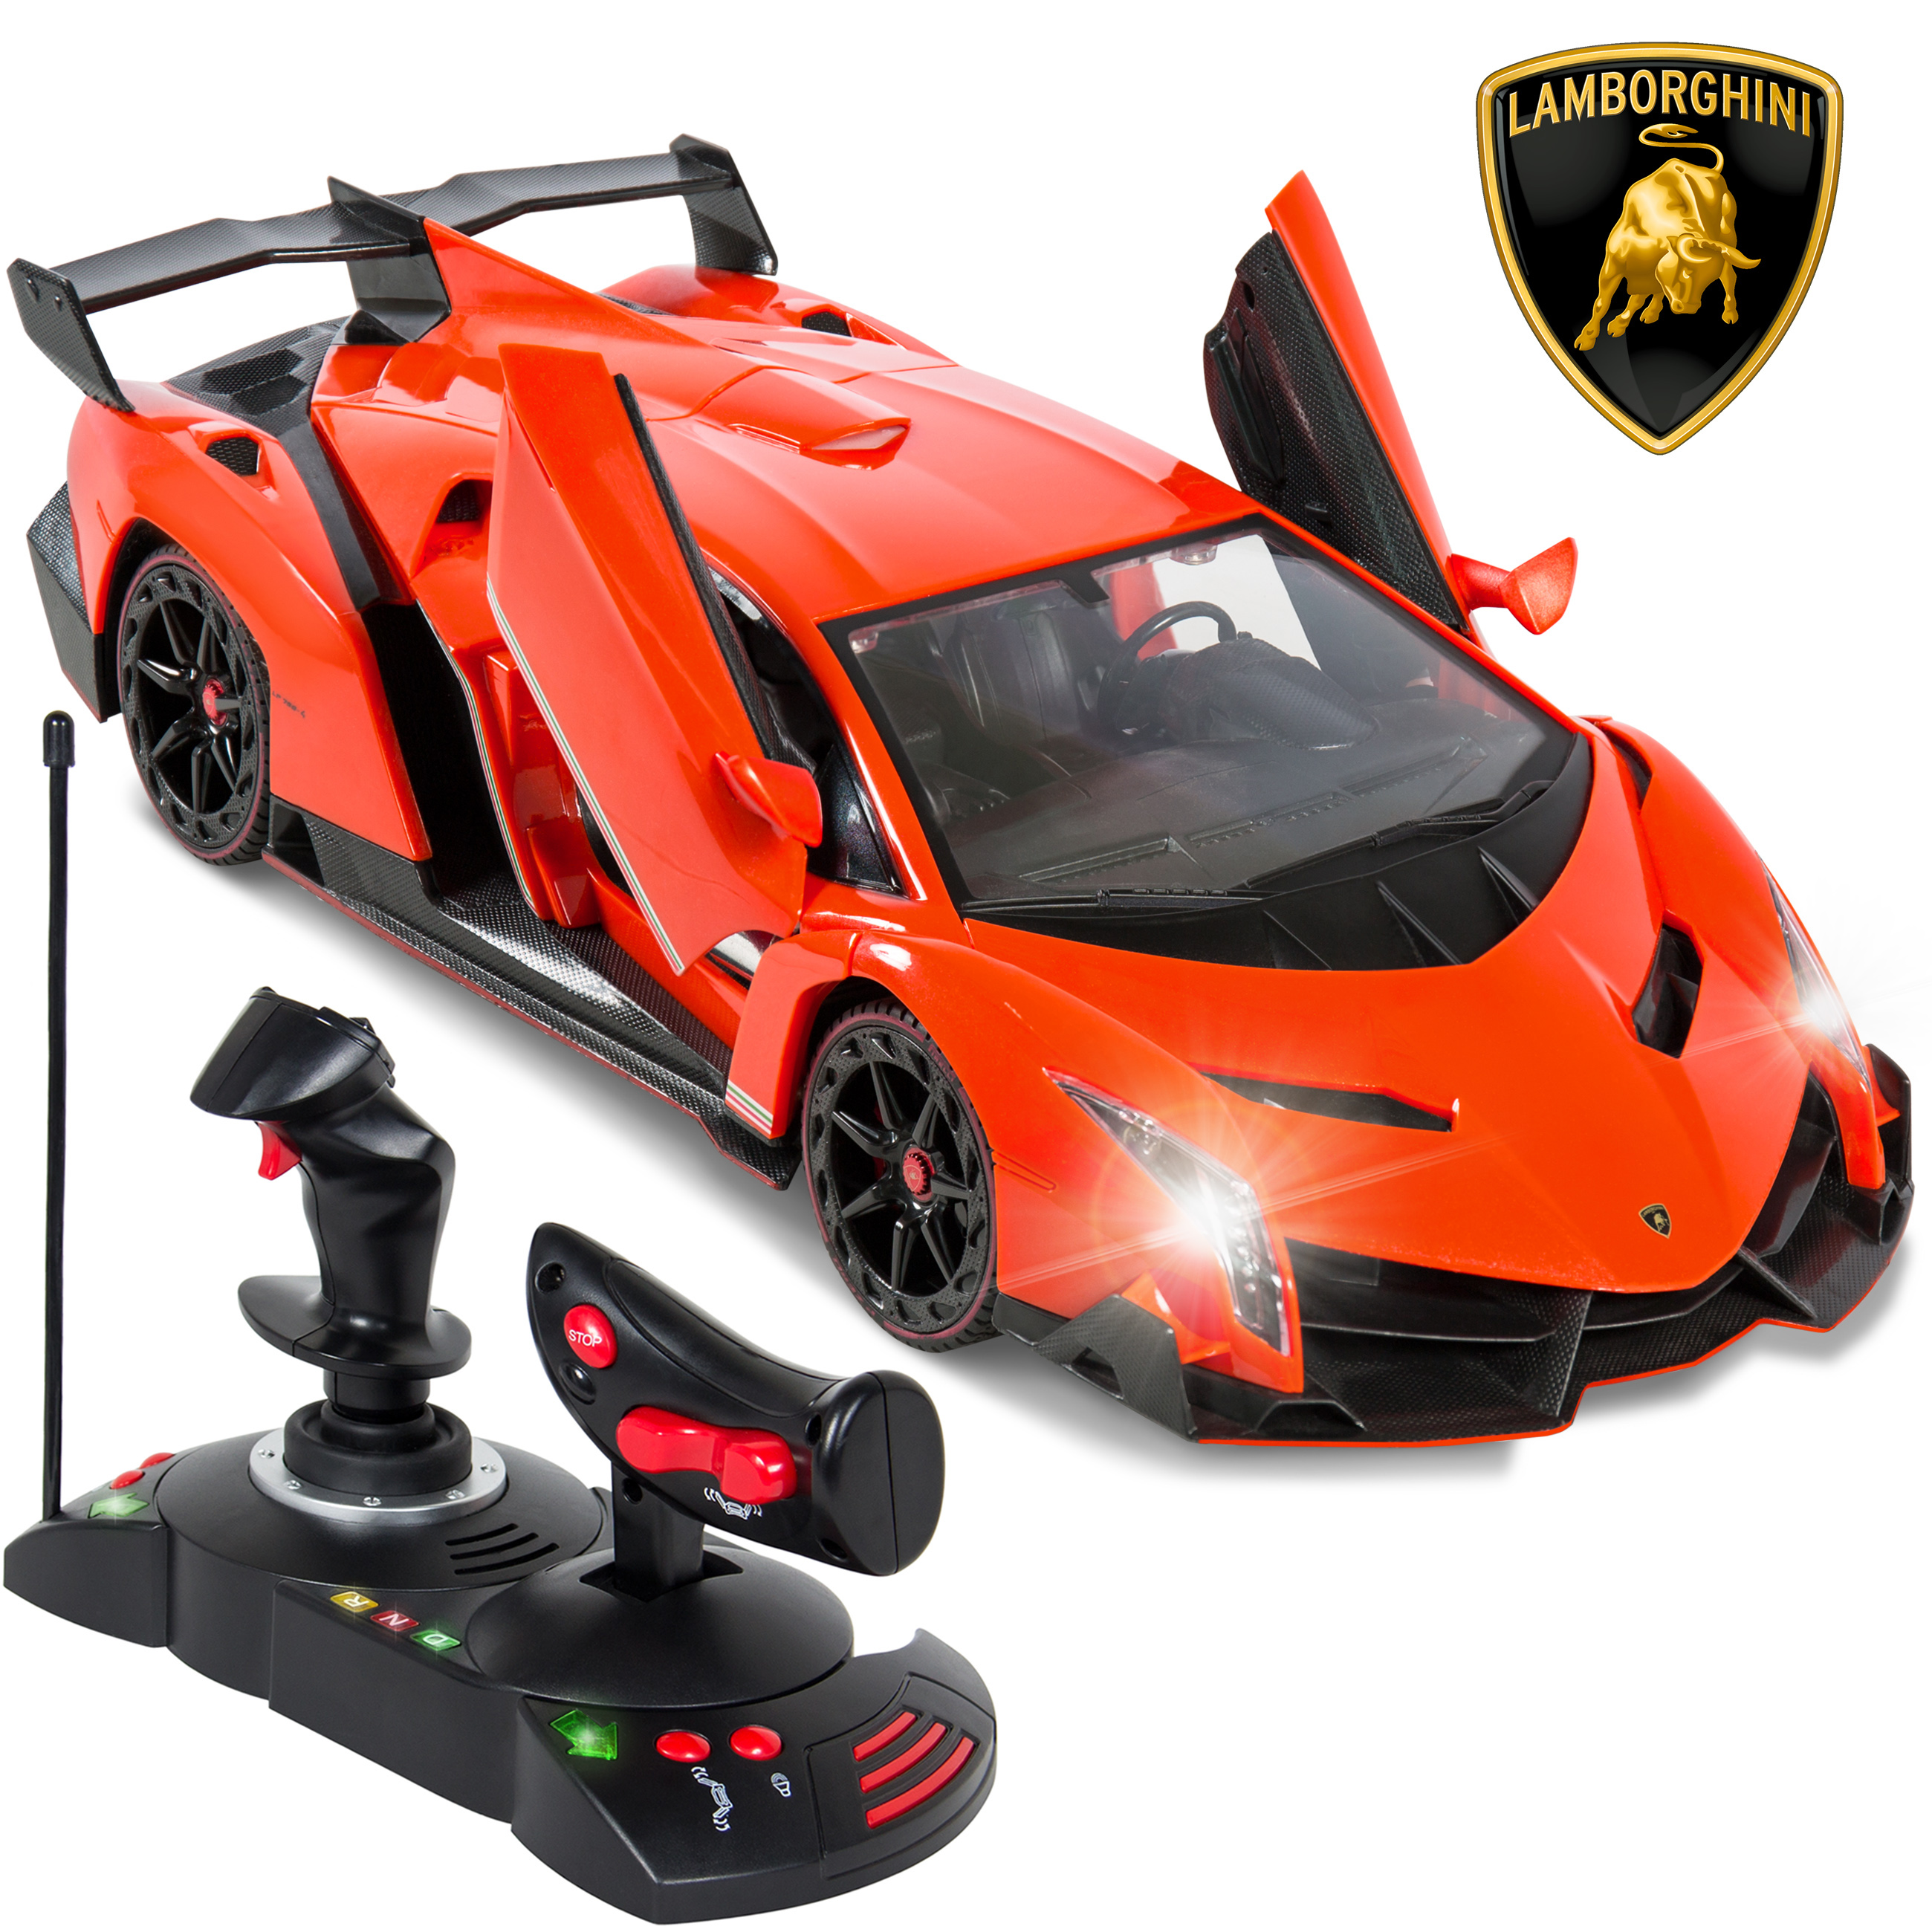 Best Choice Products 1/14 Scale RC Lamborghini Veneno Gravity Sensor Radio Remote Control Car Orange